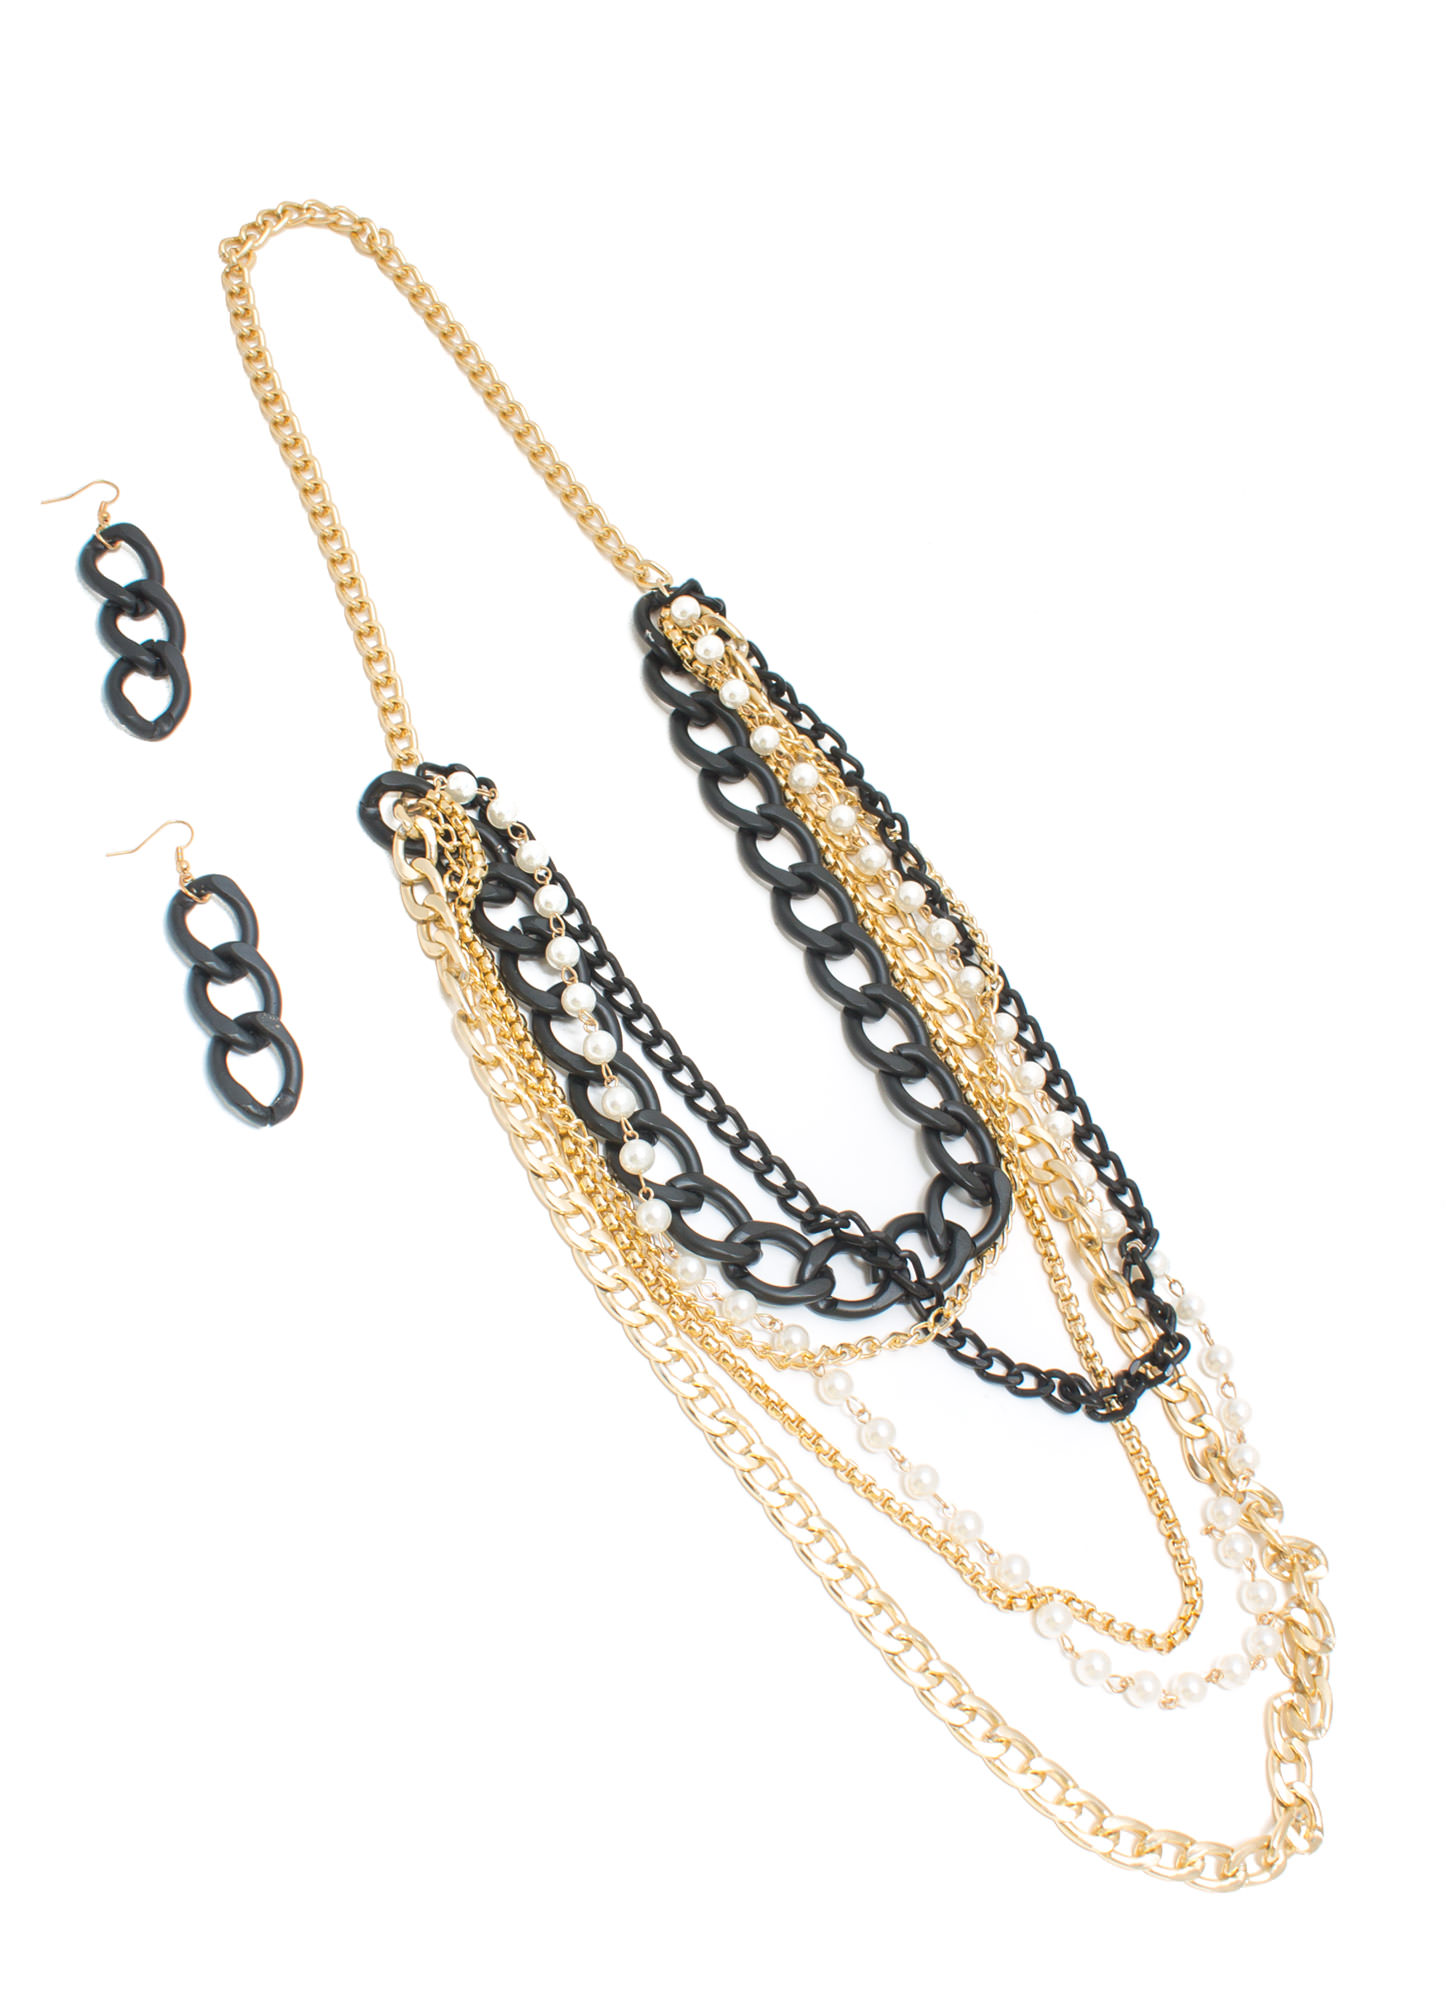 Finish It Faux Pearl 'N Chain Necklace Set GLDBLK